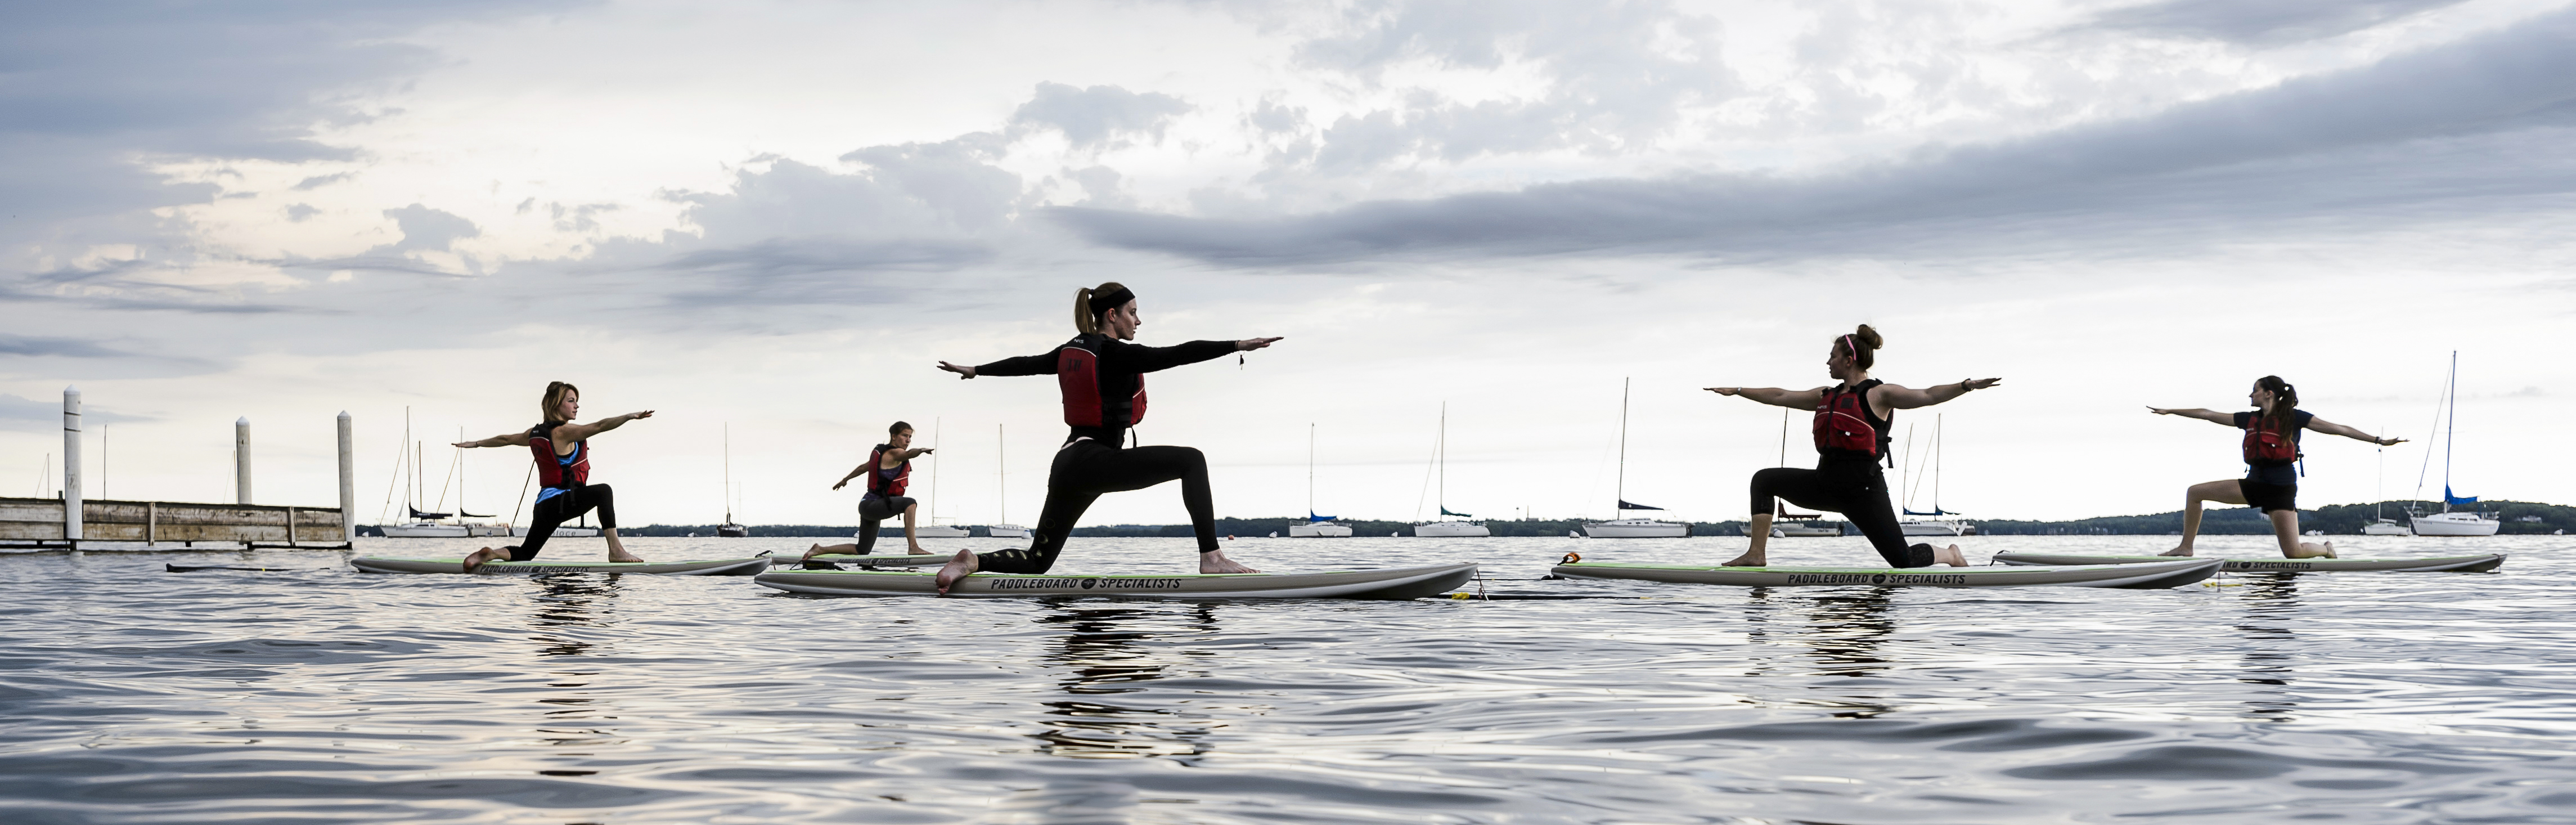 Undeterred by darkening morning skies and an approaching storm front, a group of women maintain balance during an Outdoor UW standup paddleboard (SUP) yoga class led by instructor Sarah Calvert, second from right, on Lake Mendota near the Memorial Union Terrace at the University of Wisconsin-Madison during spring on June 12, 2016. Outdoor UW is home to outdoor equipment rentals and the Wisconsin Hoofers. (Photo by Jeff Miller/UW-Madison)